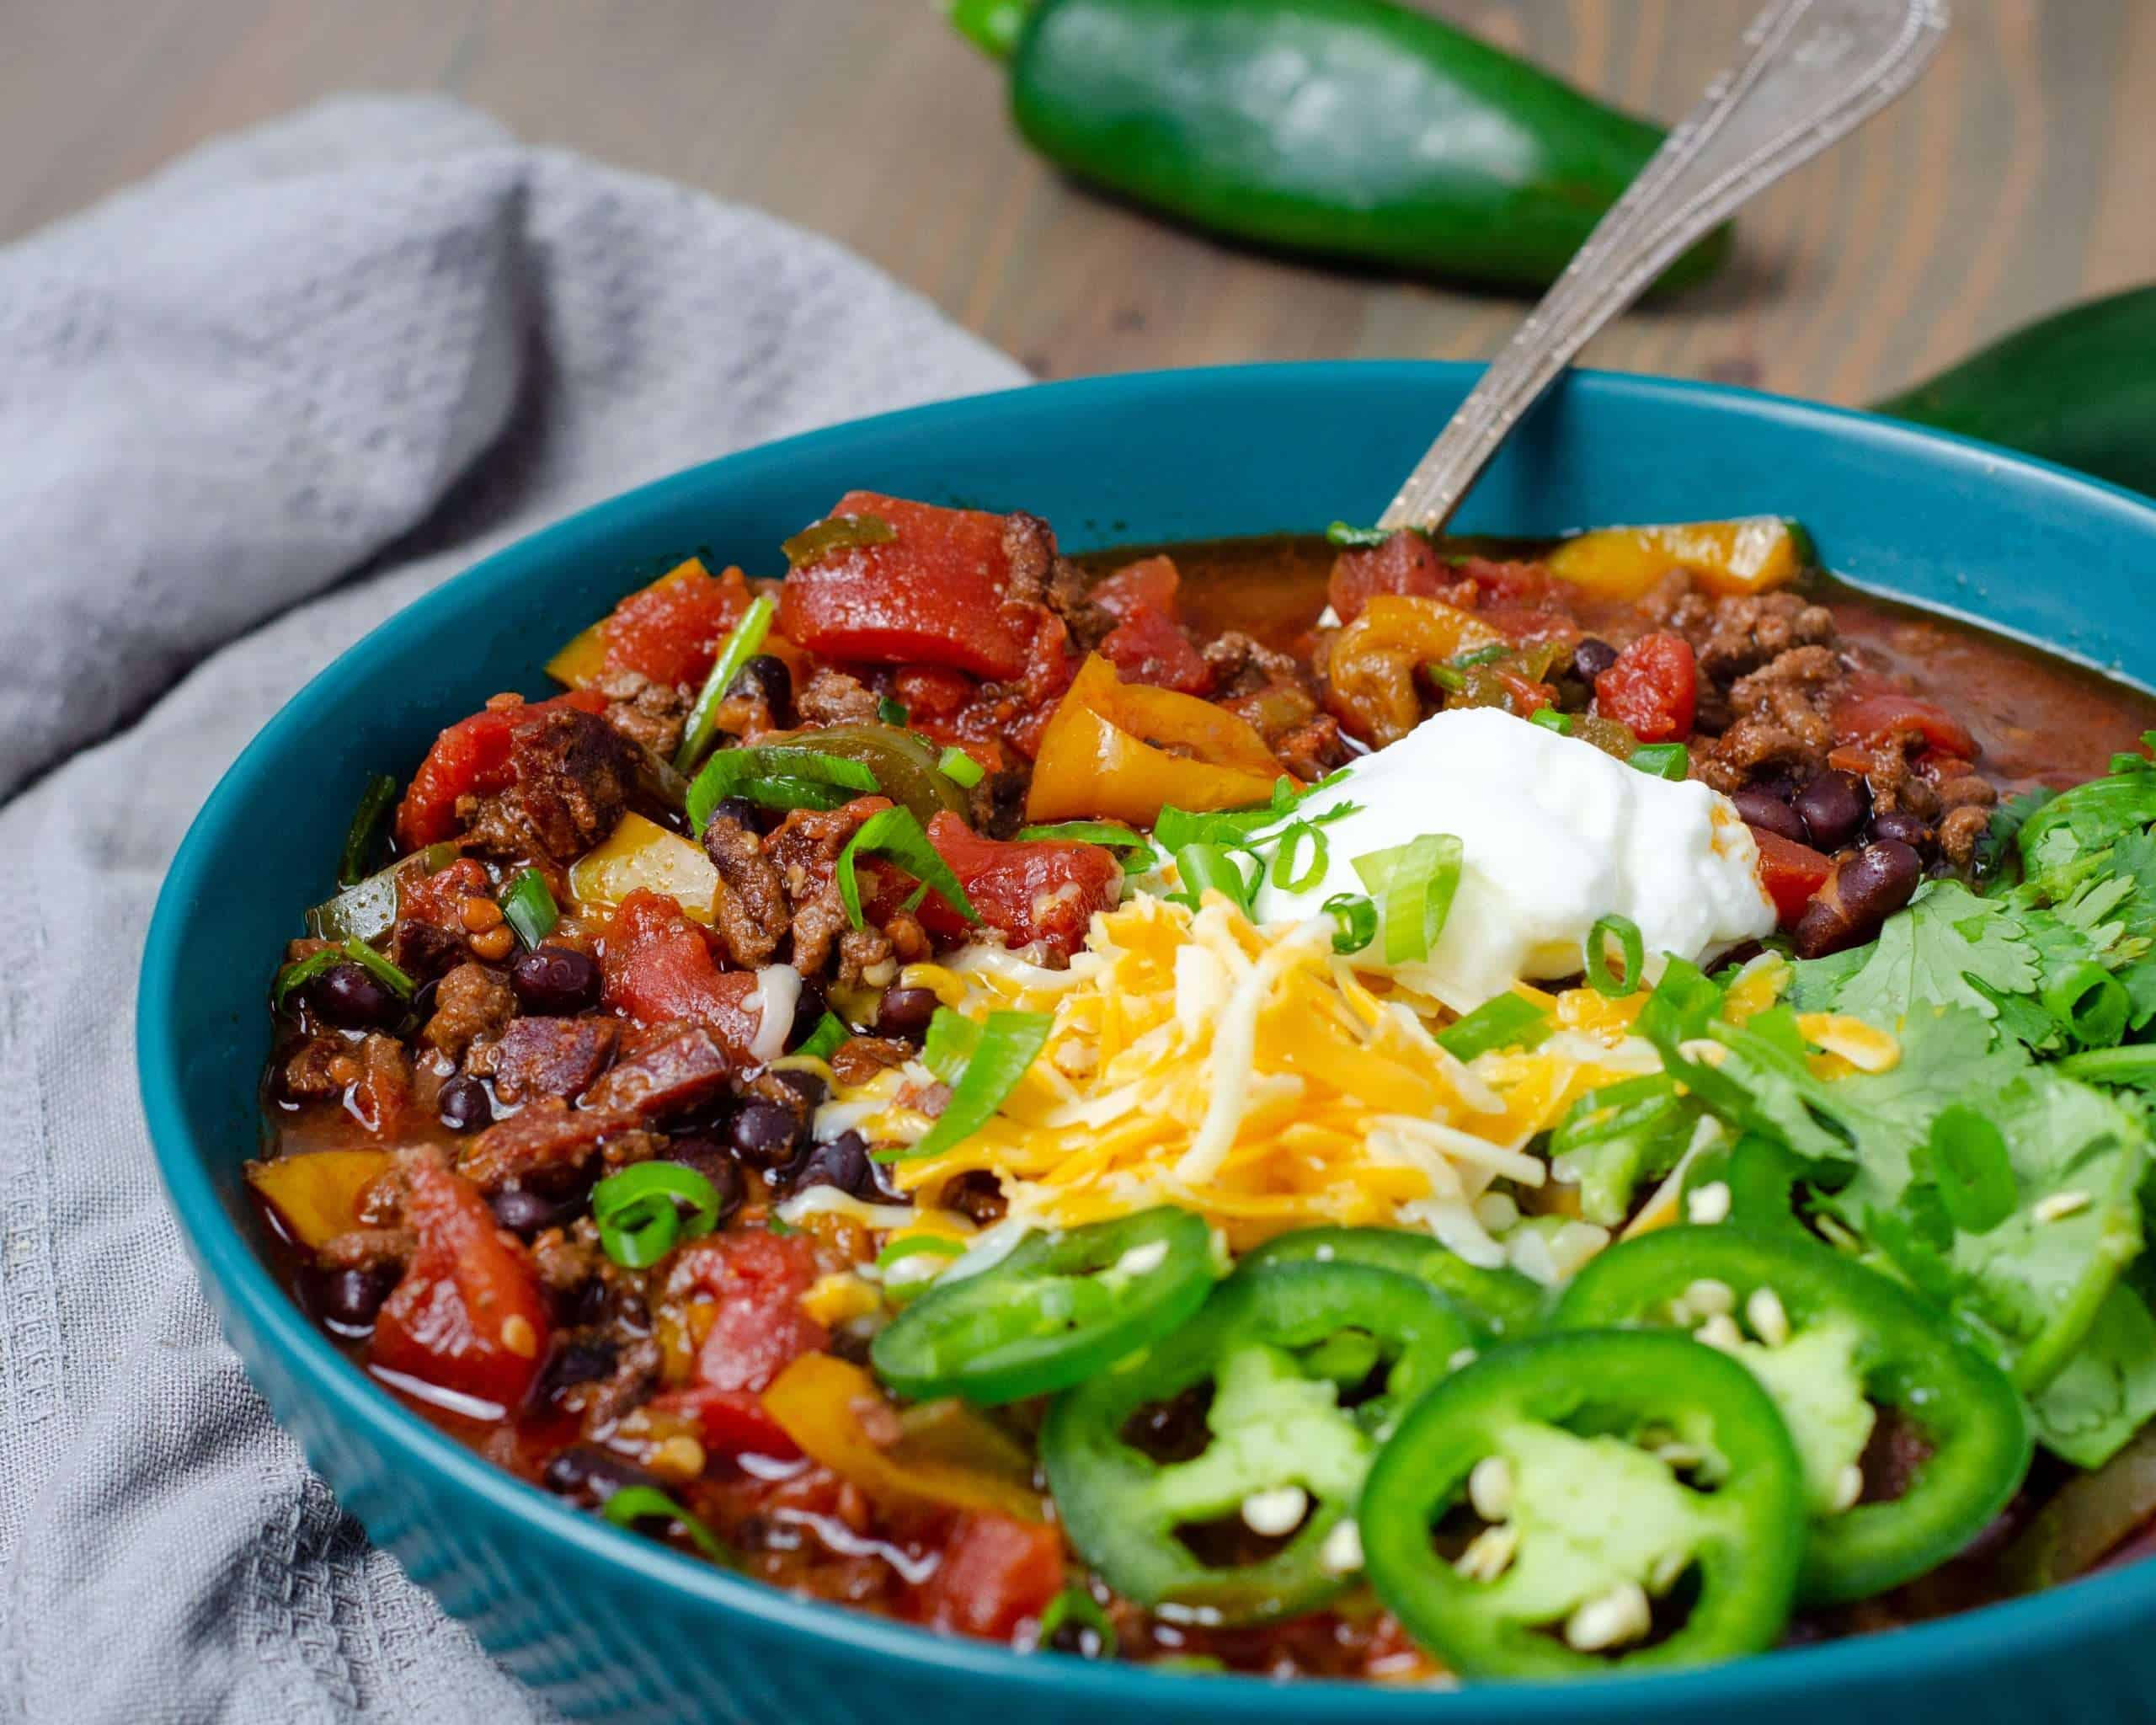 Low Carb Chili Con Carne